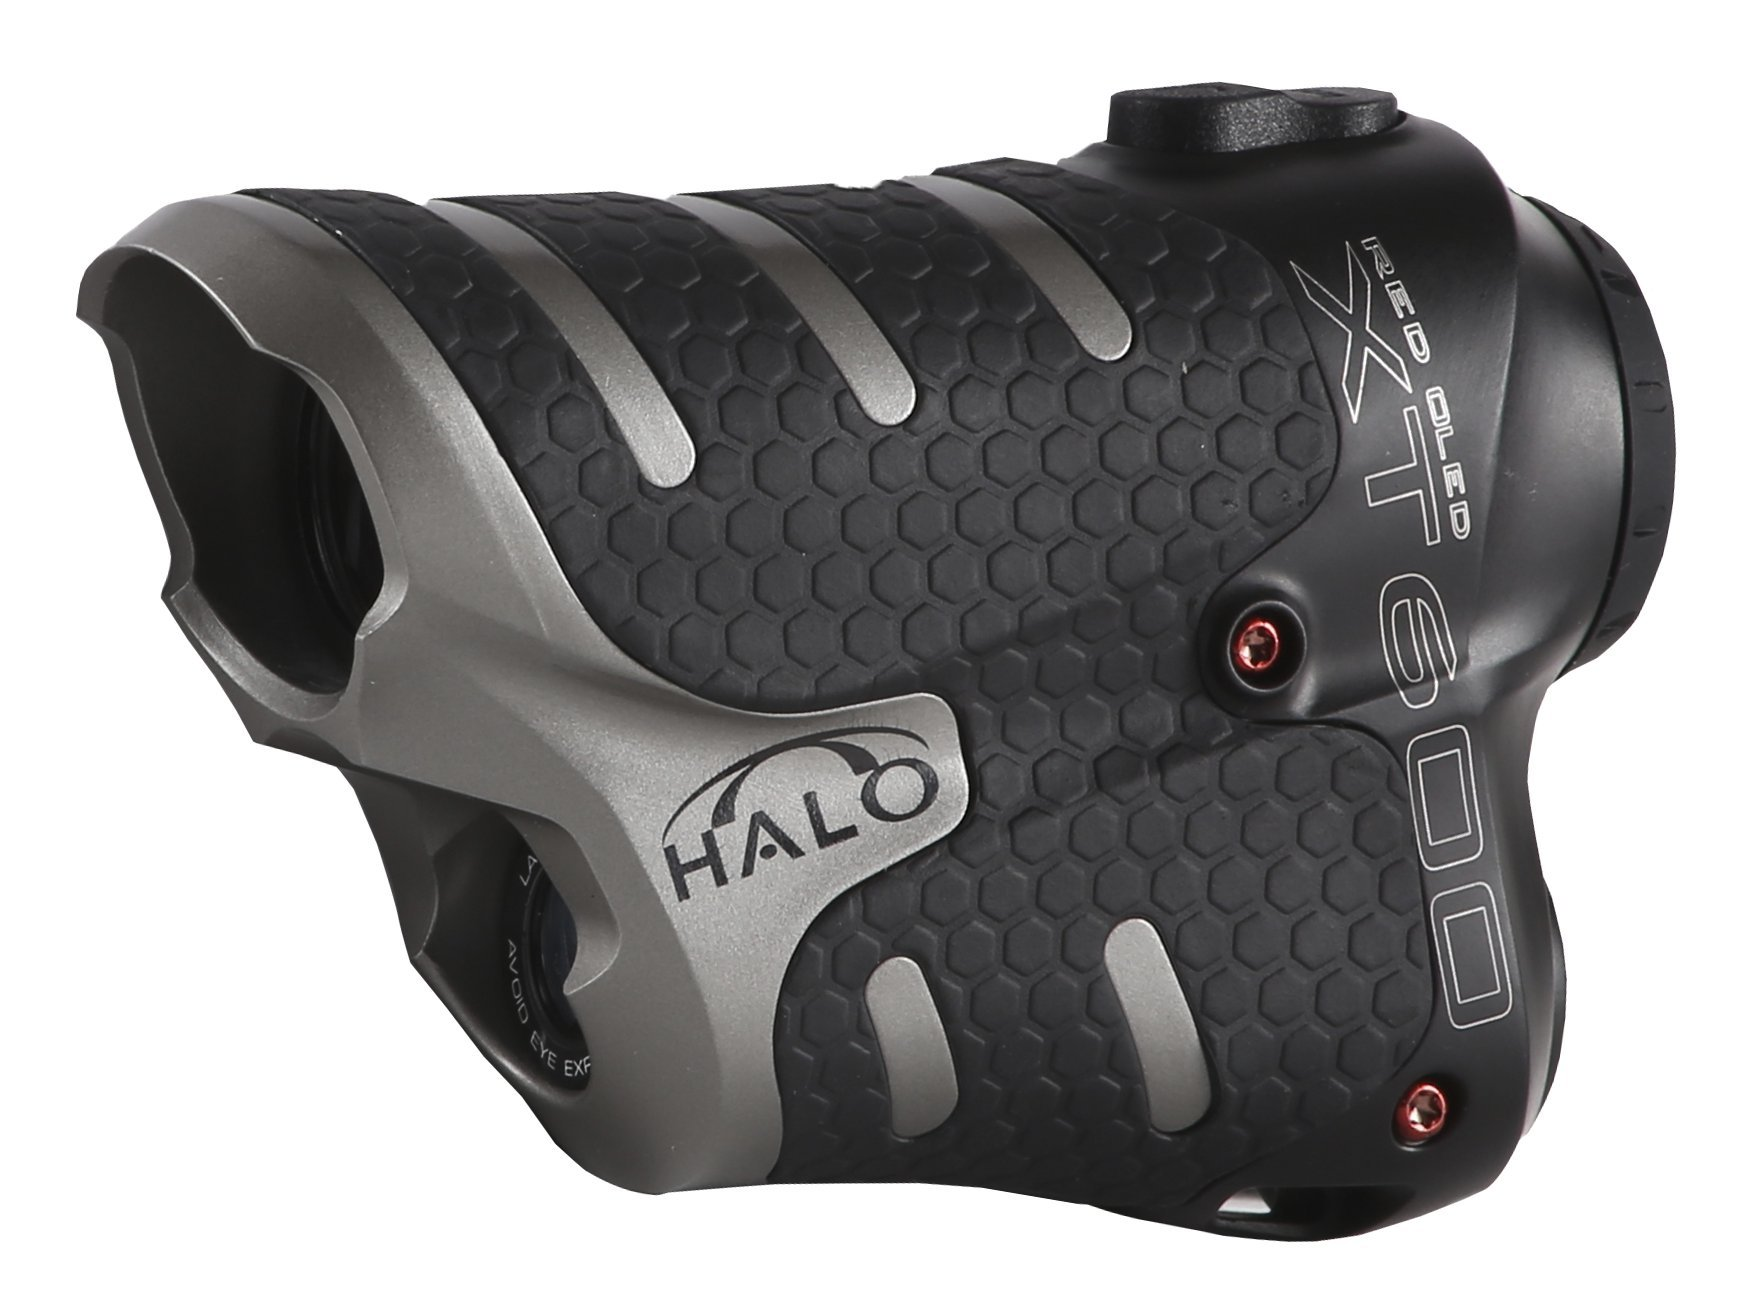 Wildgame Innovations Halo 600 Yard Laser Range Finder